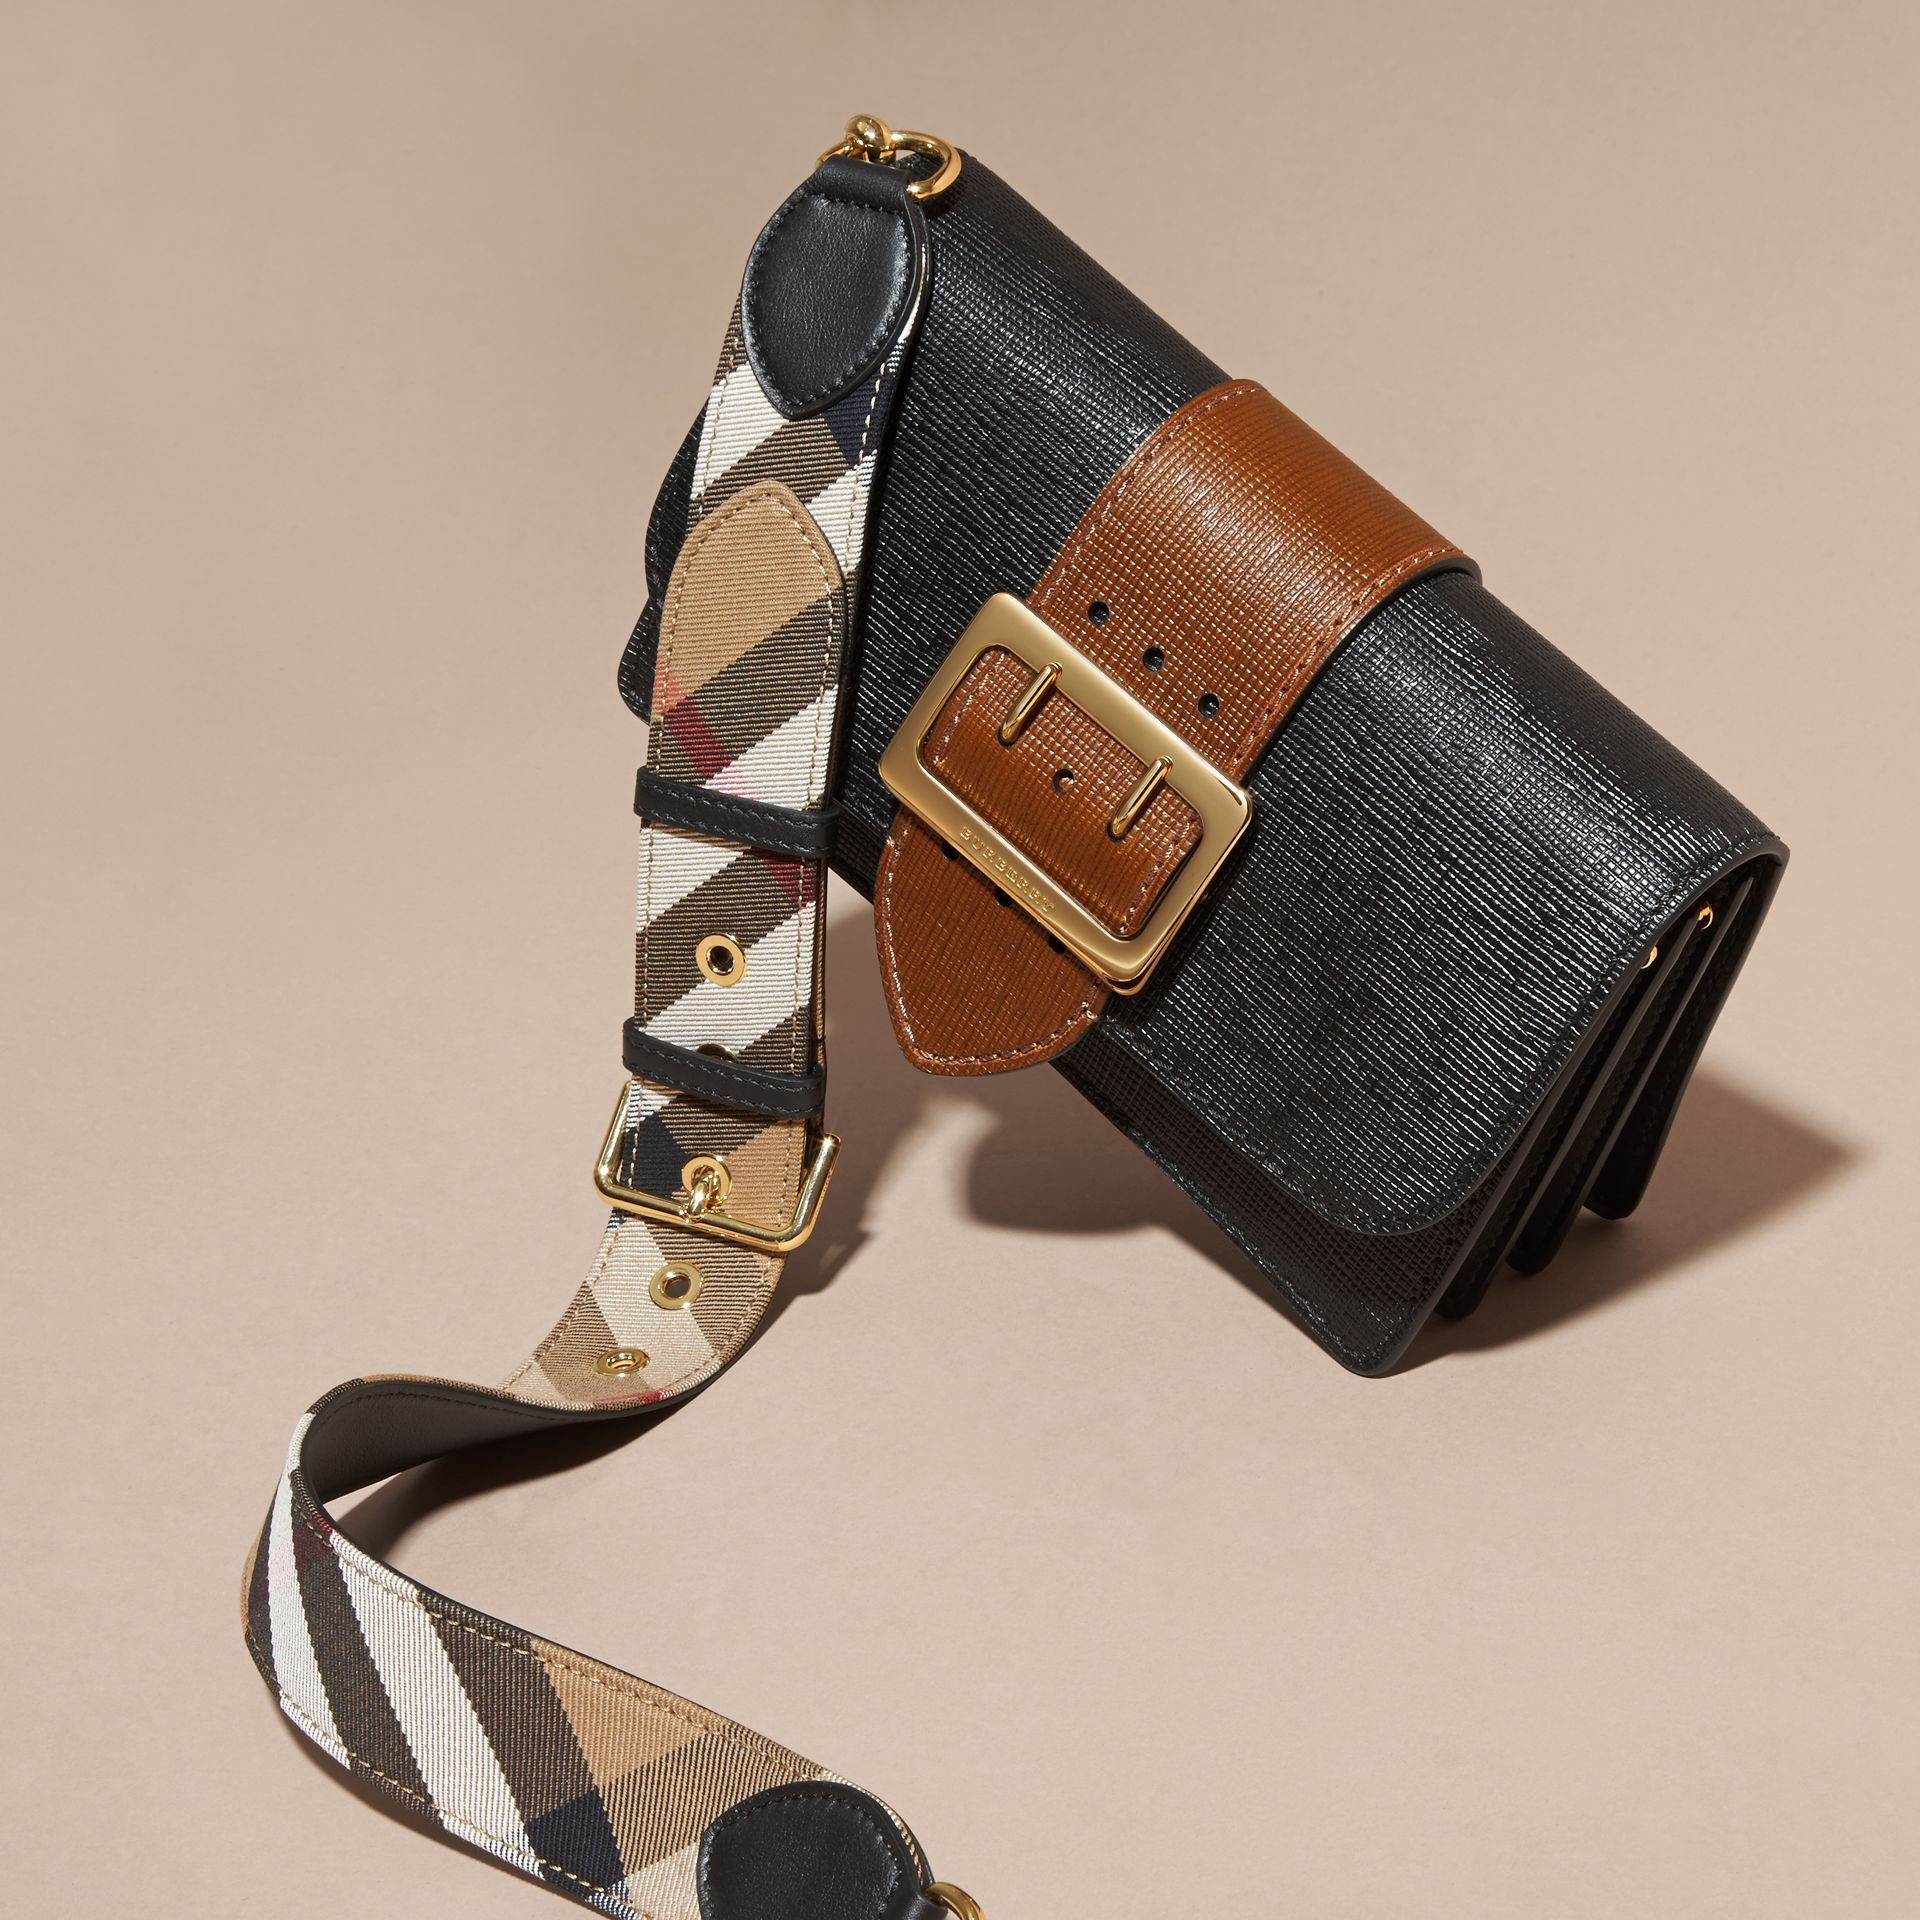 Black/tan The Medium Buckle Bag in Textured Leather Black/tan - gallery image 6